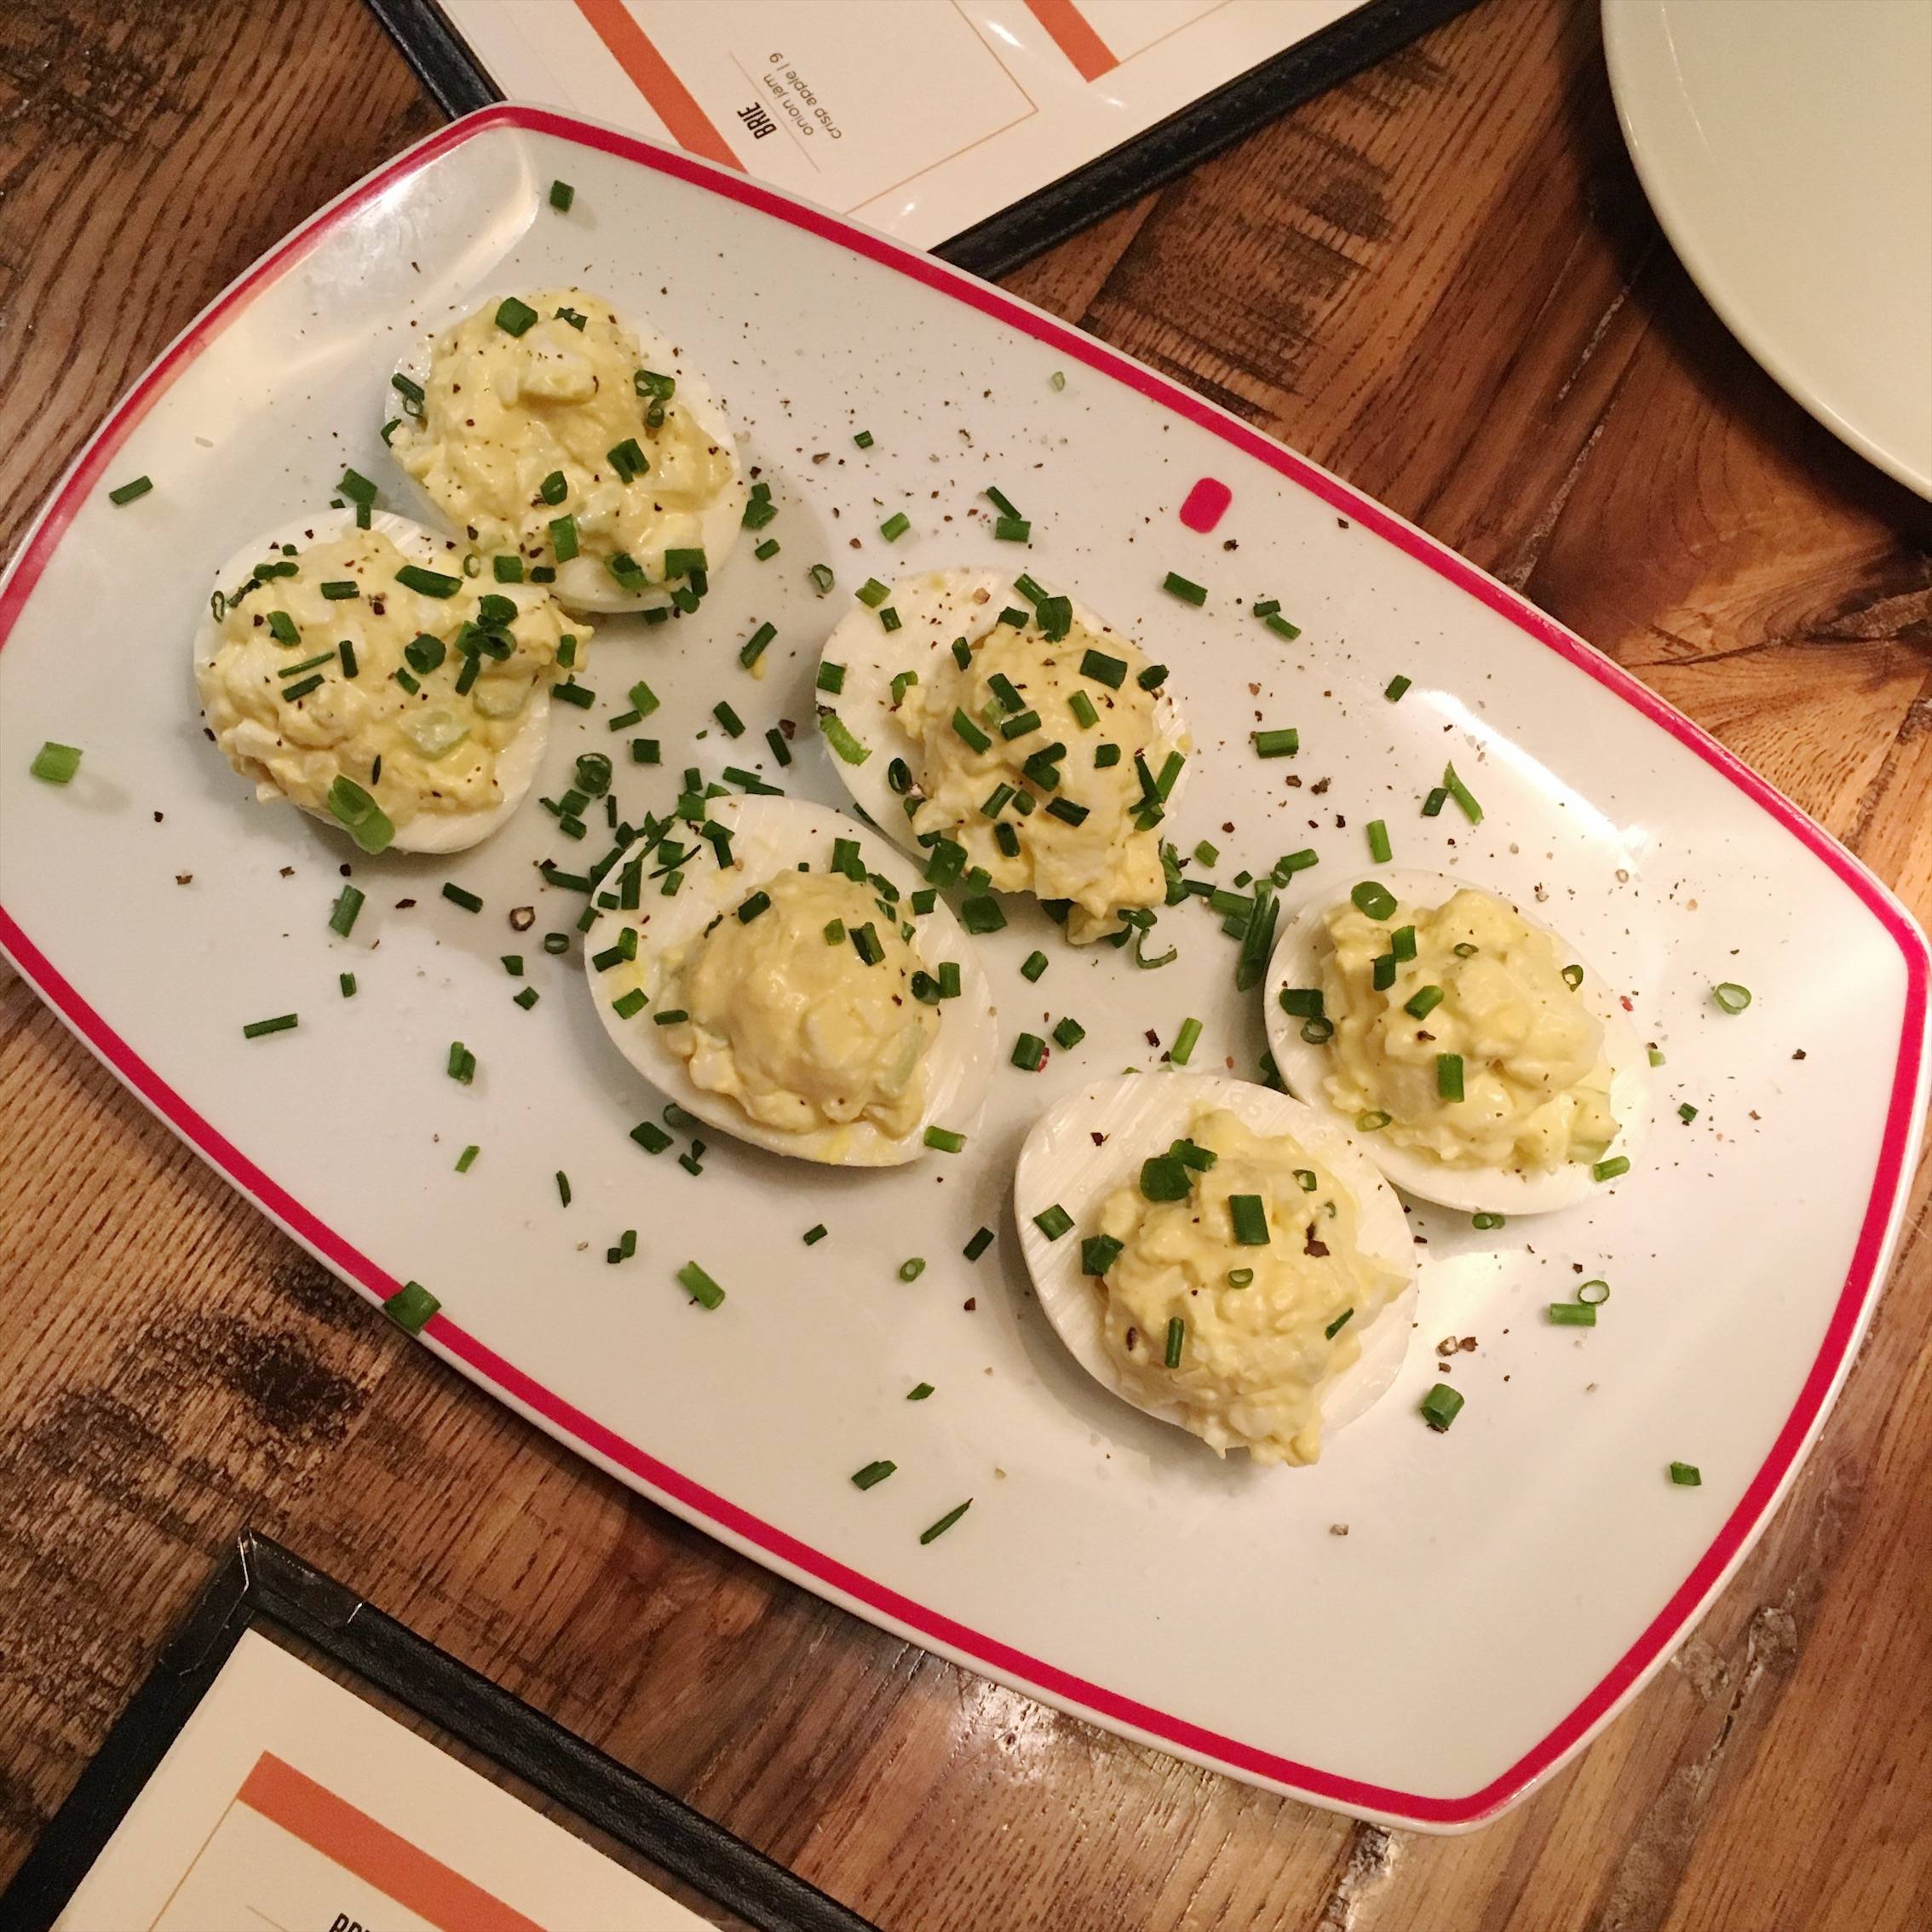 The most perfectly prepared deviled eggs